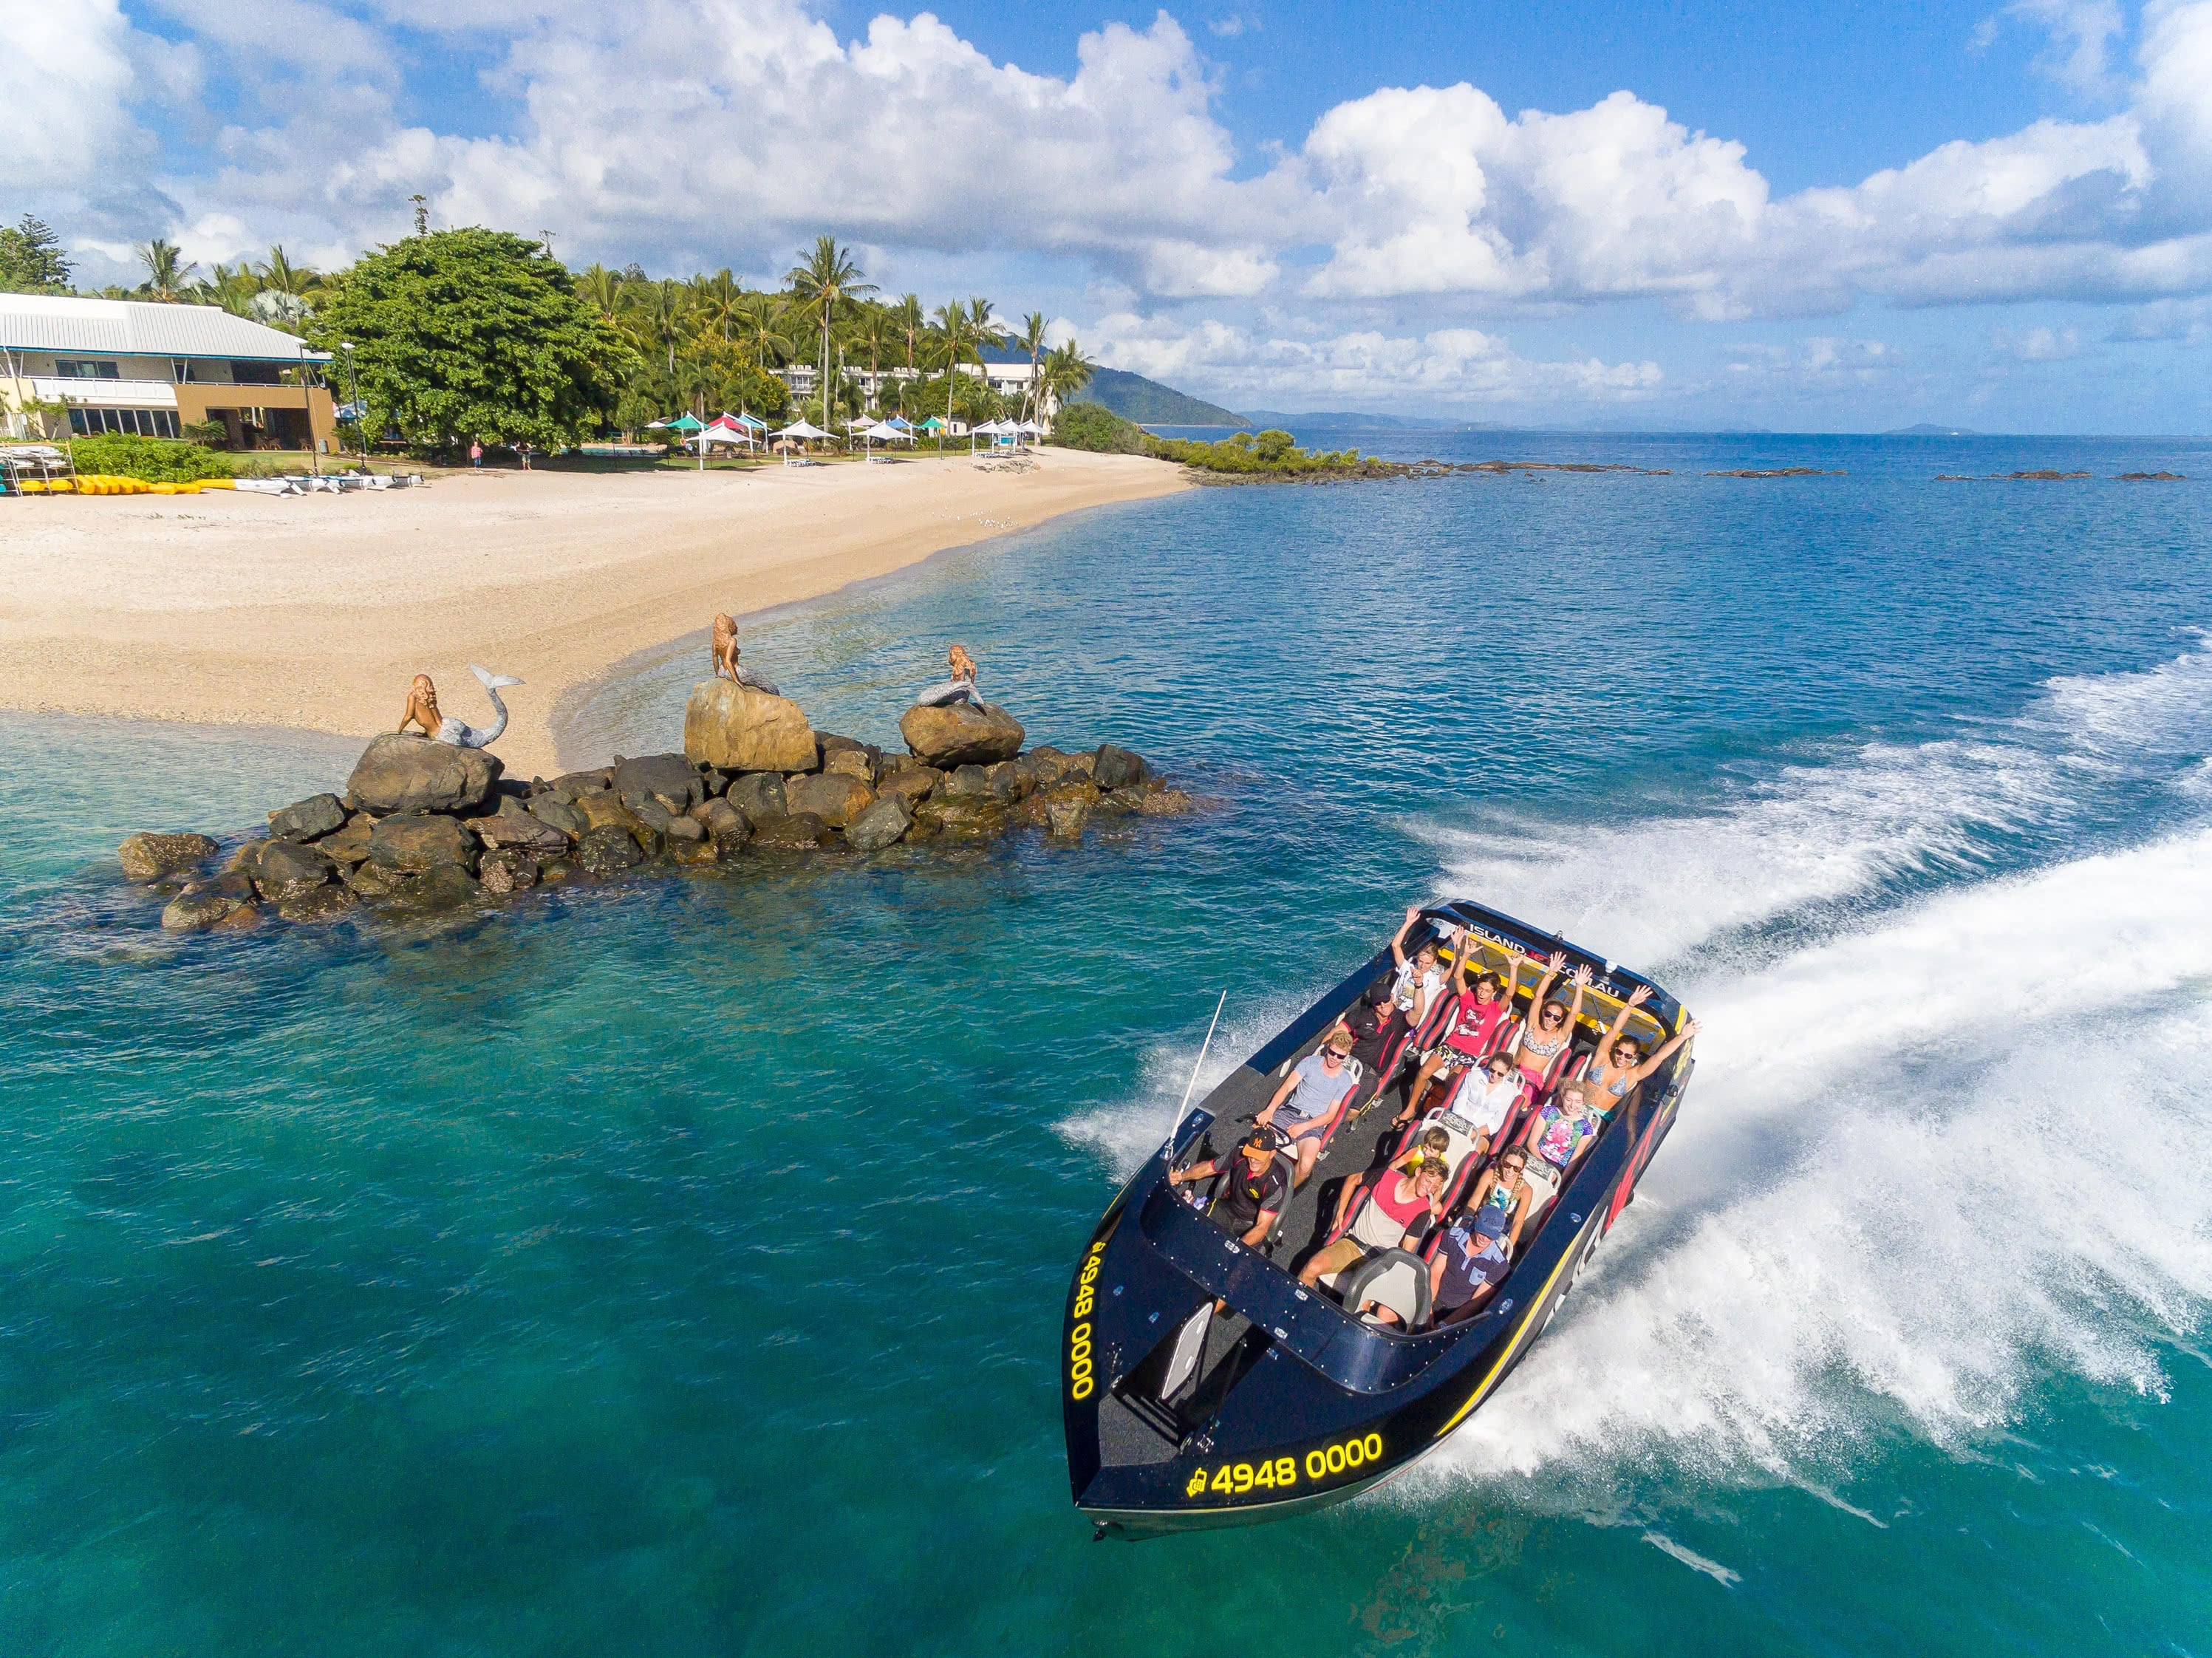 Tenant News: Island tours with a twist – a new tour launches in Airlie Beach!